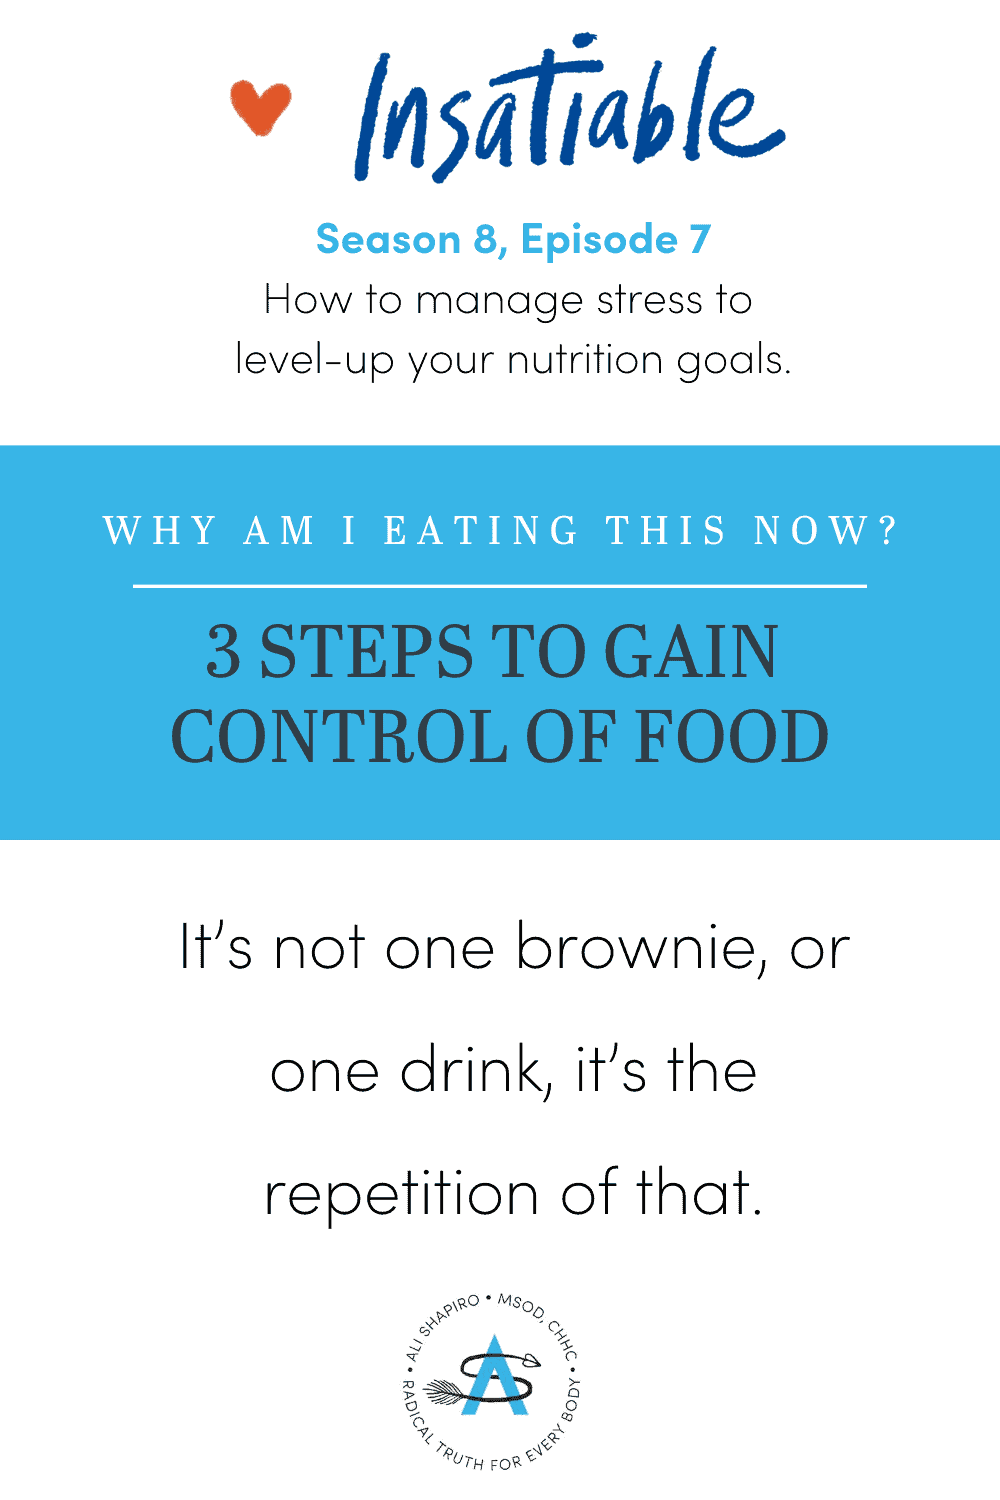 3 Practices to Get Back in Control of Food